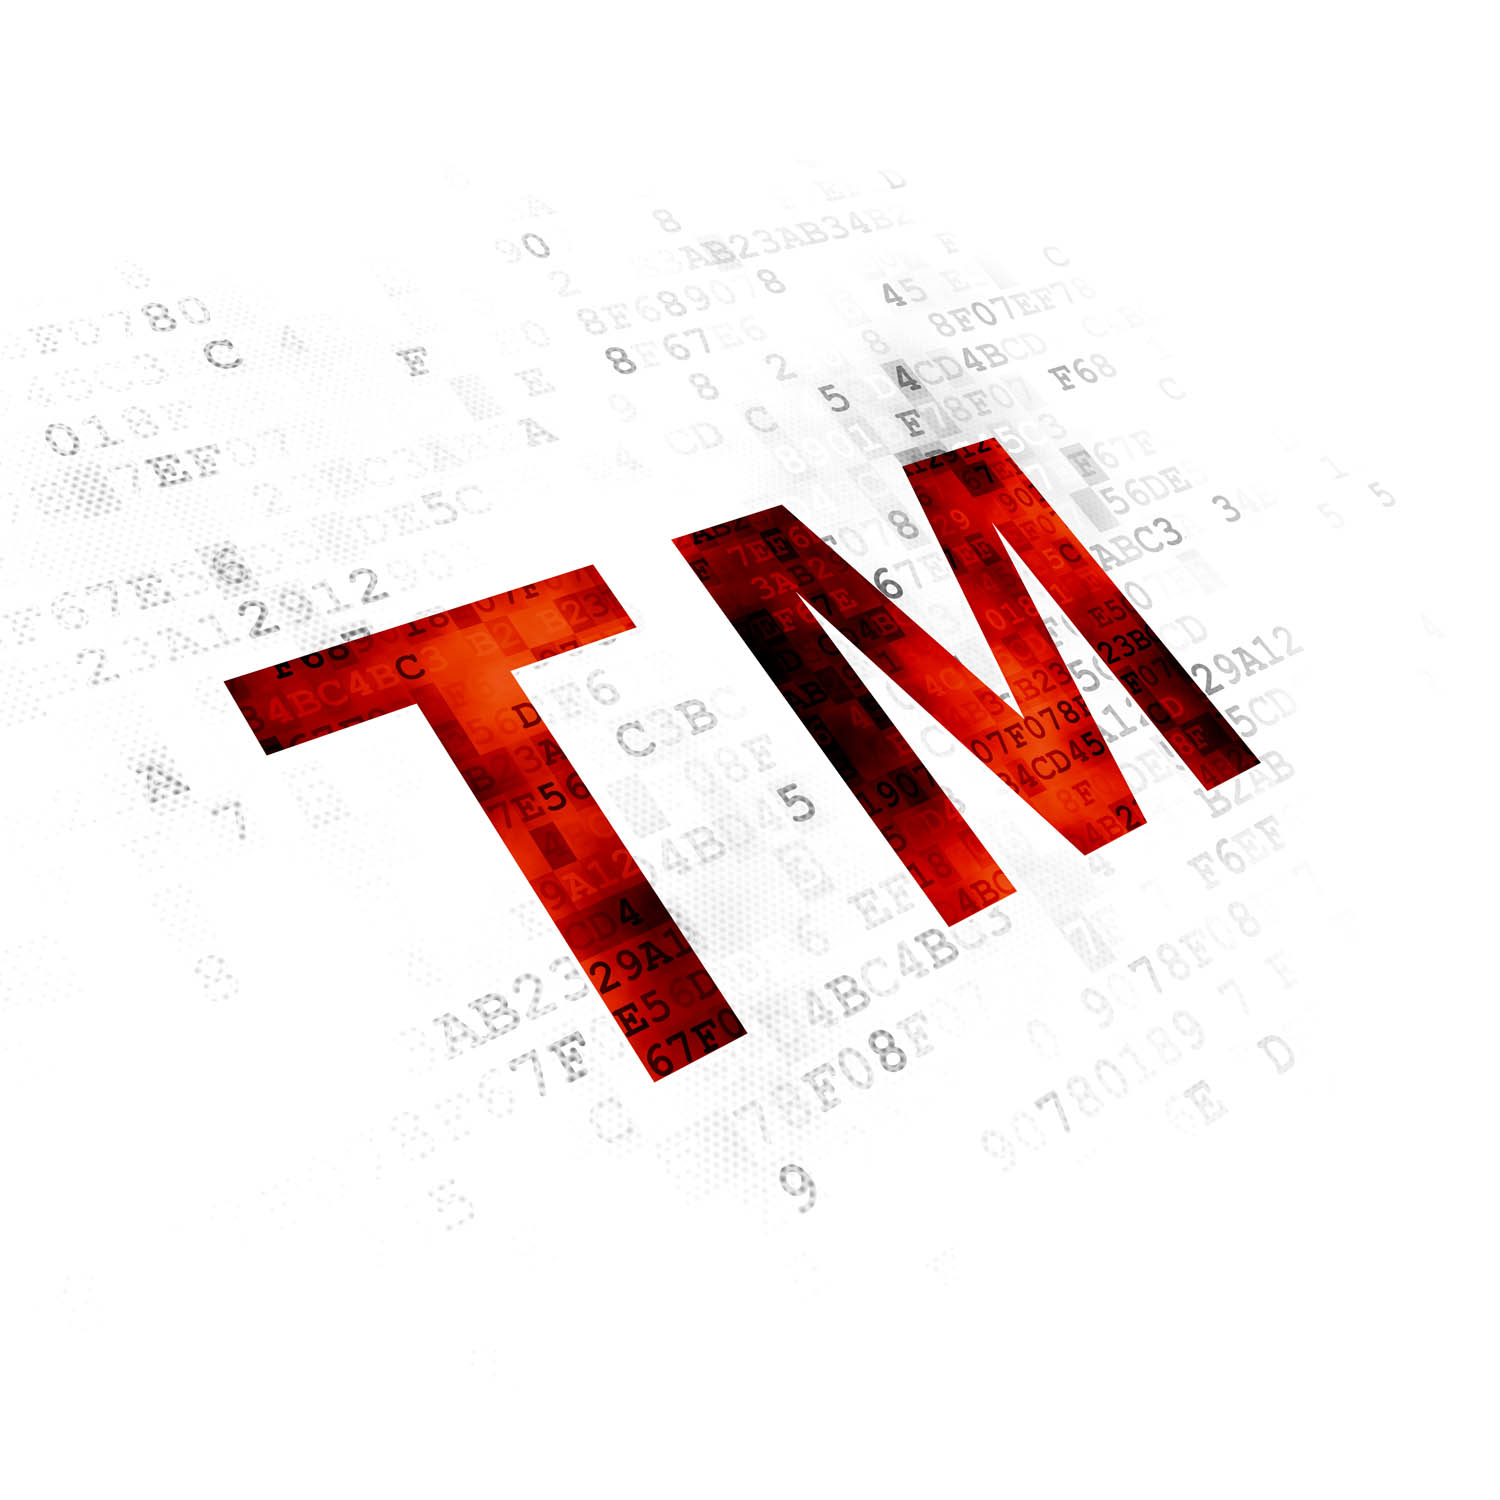 Why You Ought to Register Your Trademark